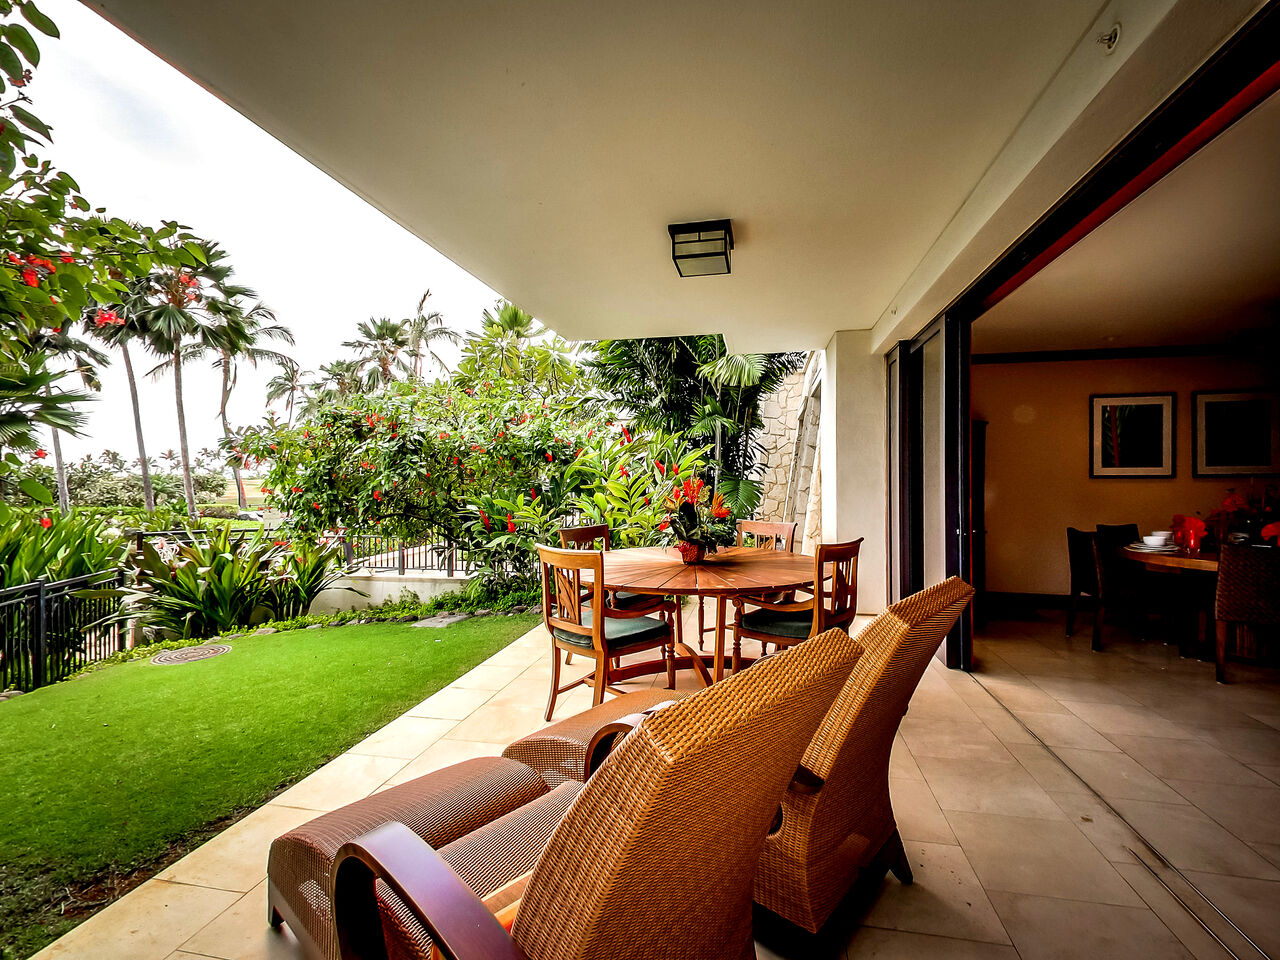 View of the Patio in Our Ola Property Management Rental.